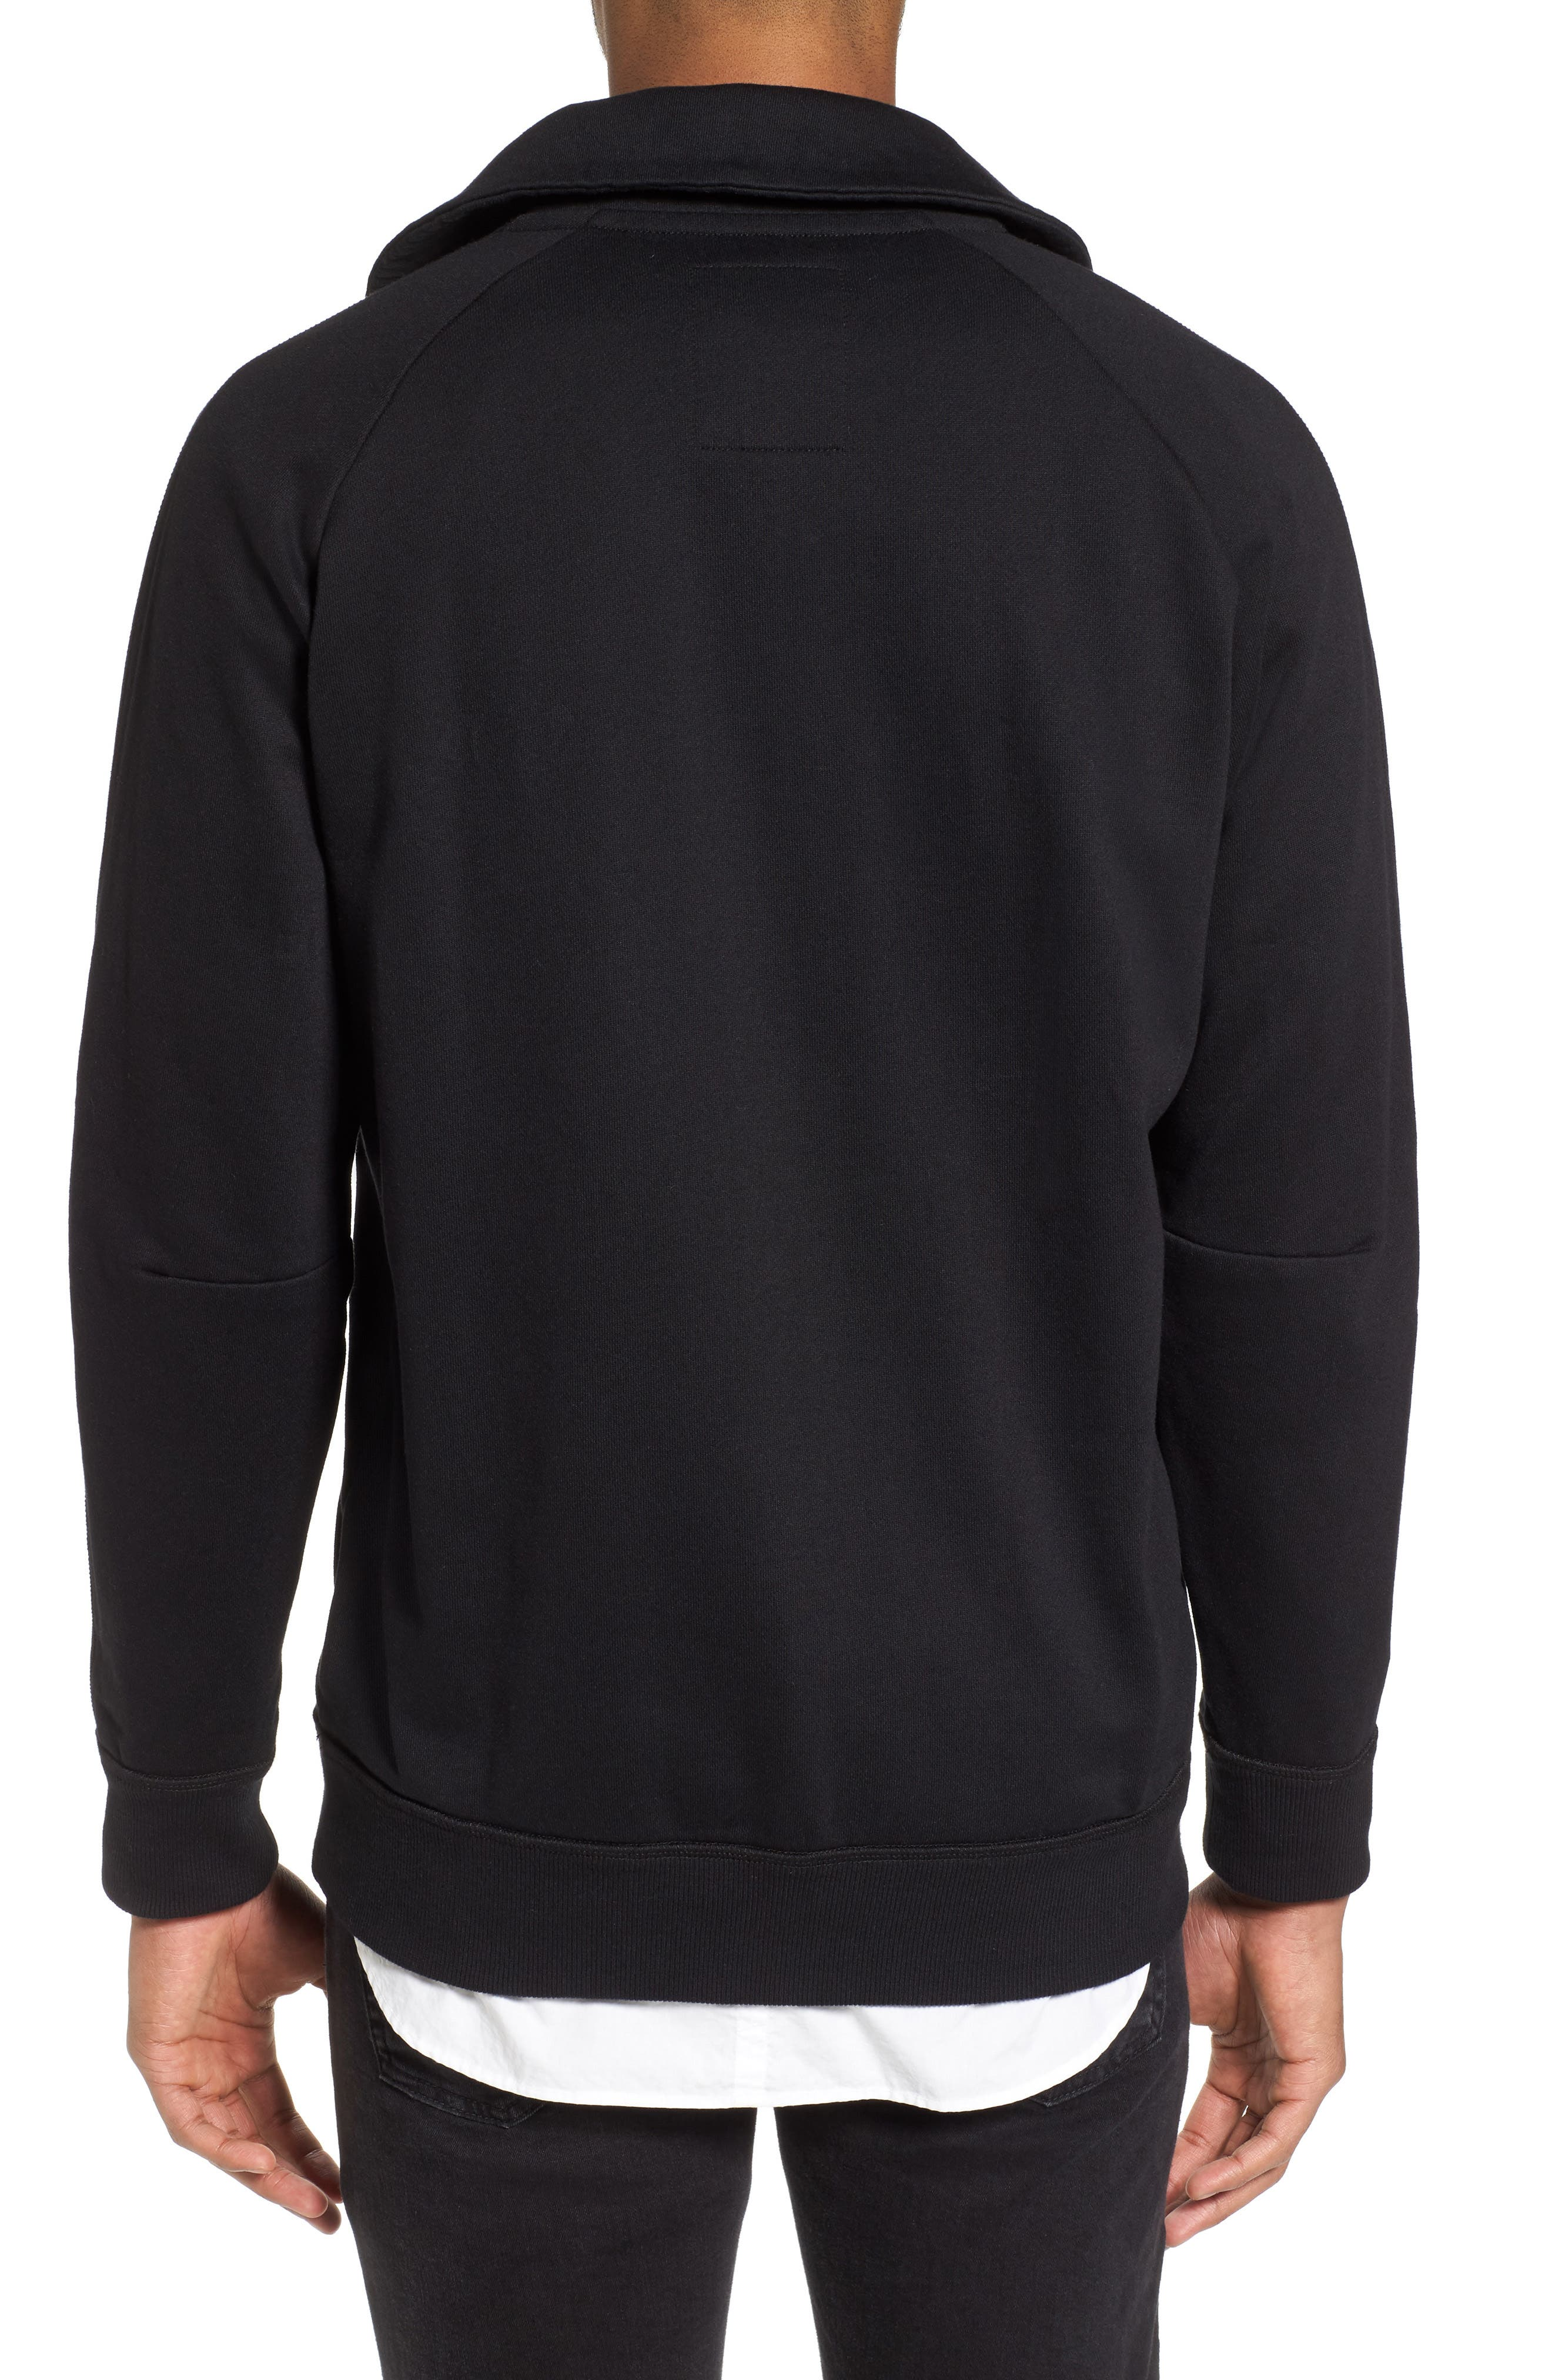 Empral Quarter Zip Pullover,                             Alternate thumbnail 2, color,                             Dark Black